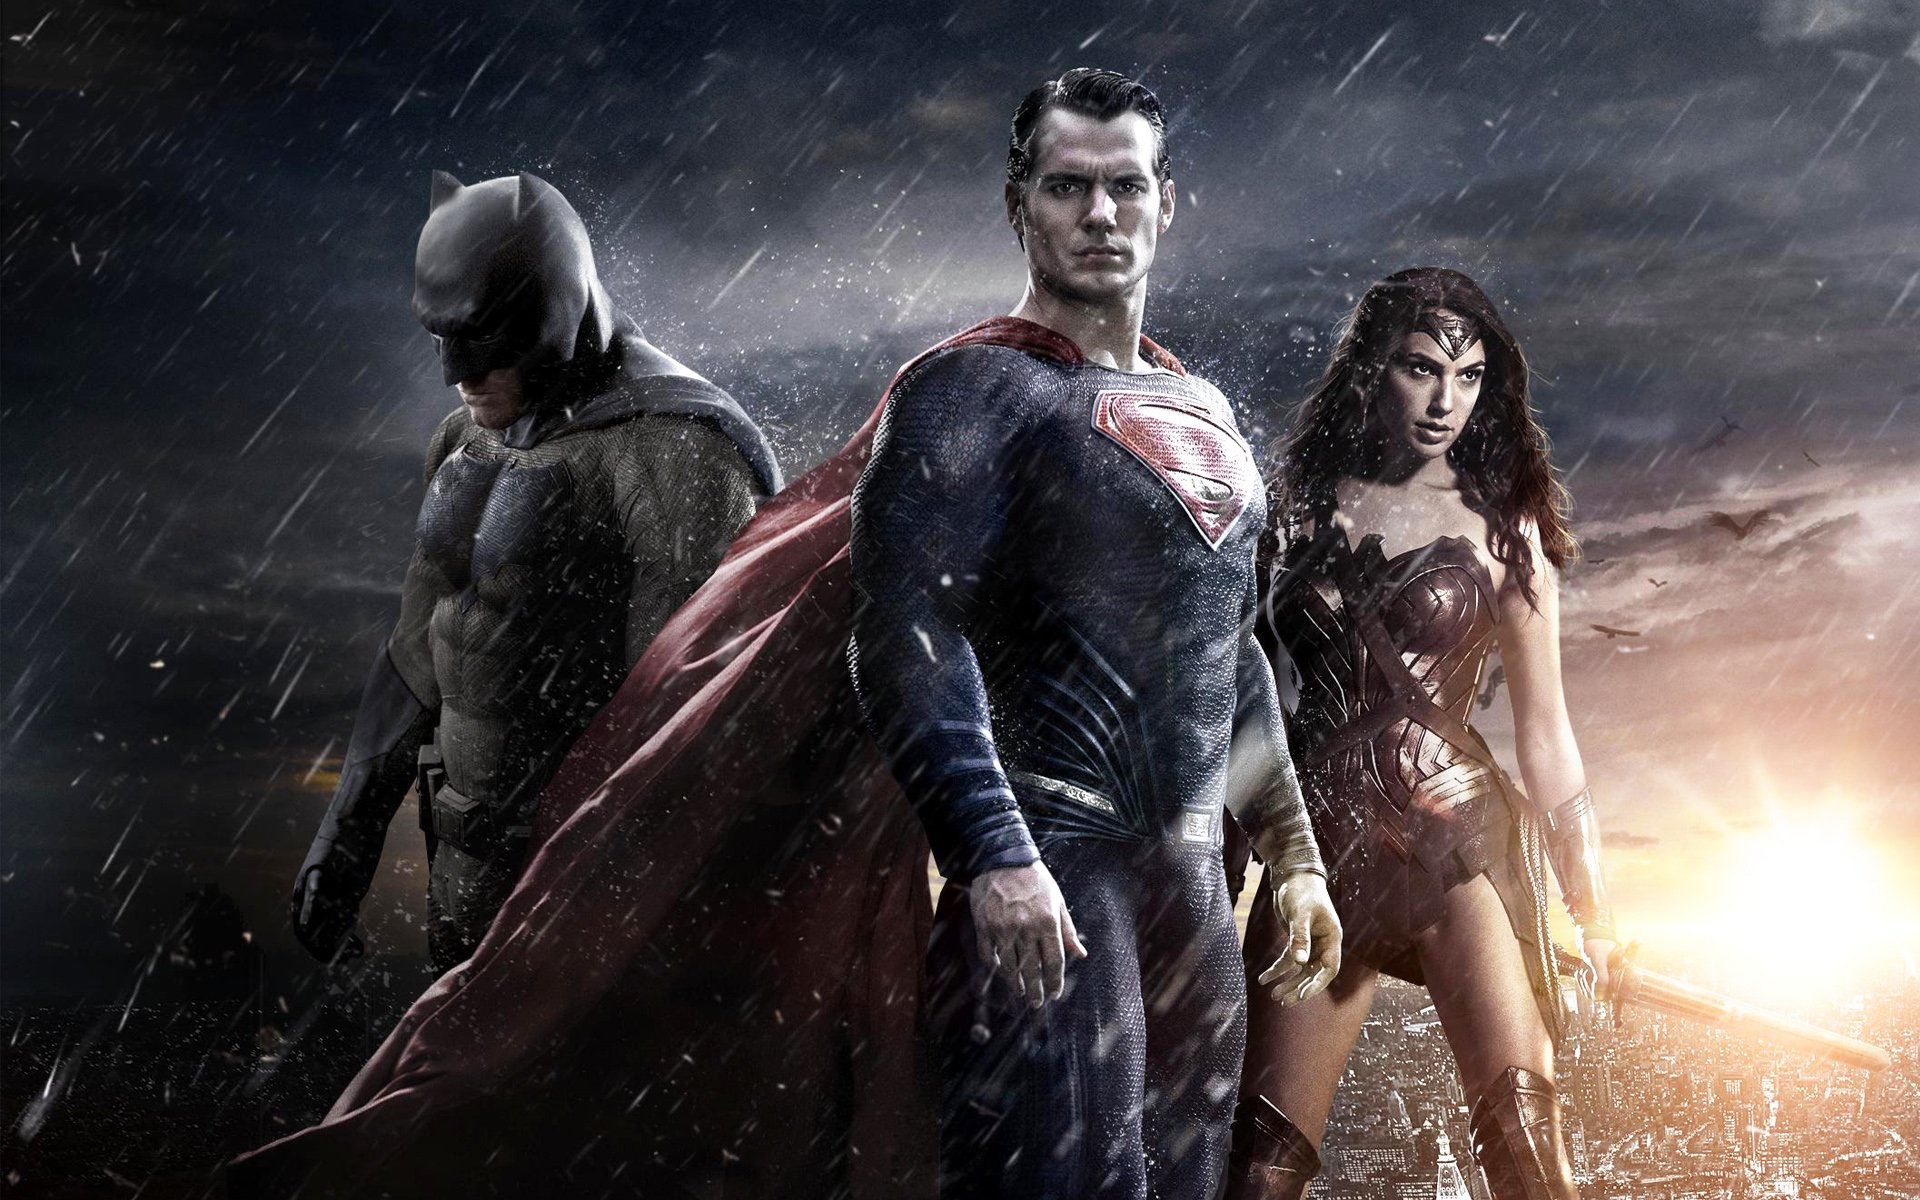 Hd wallpaper justice league - Hd Wallpaper Background Id 616511